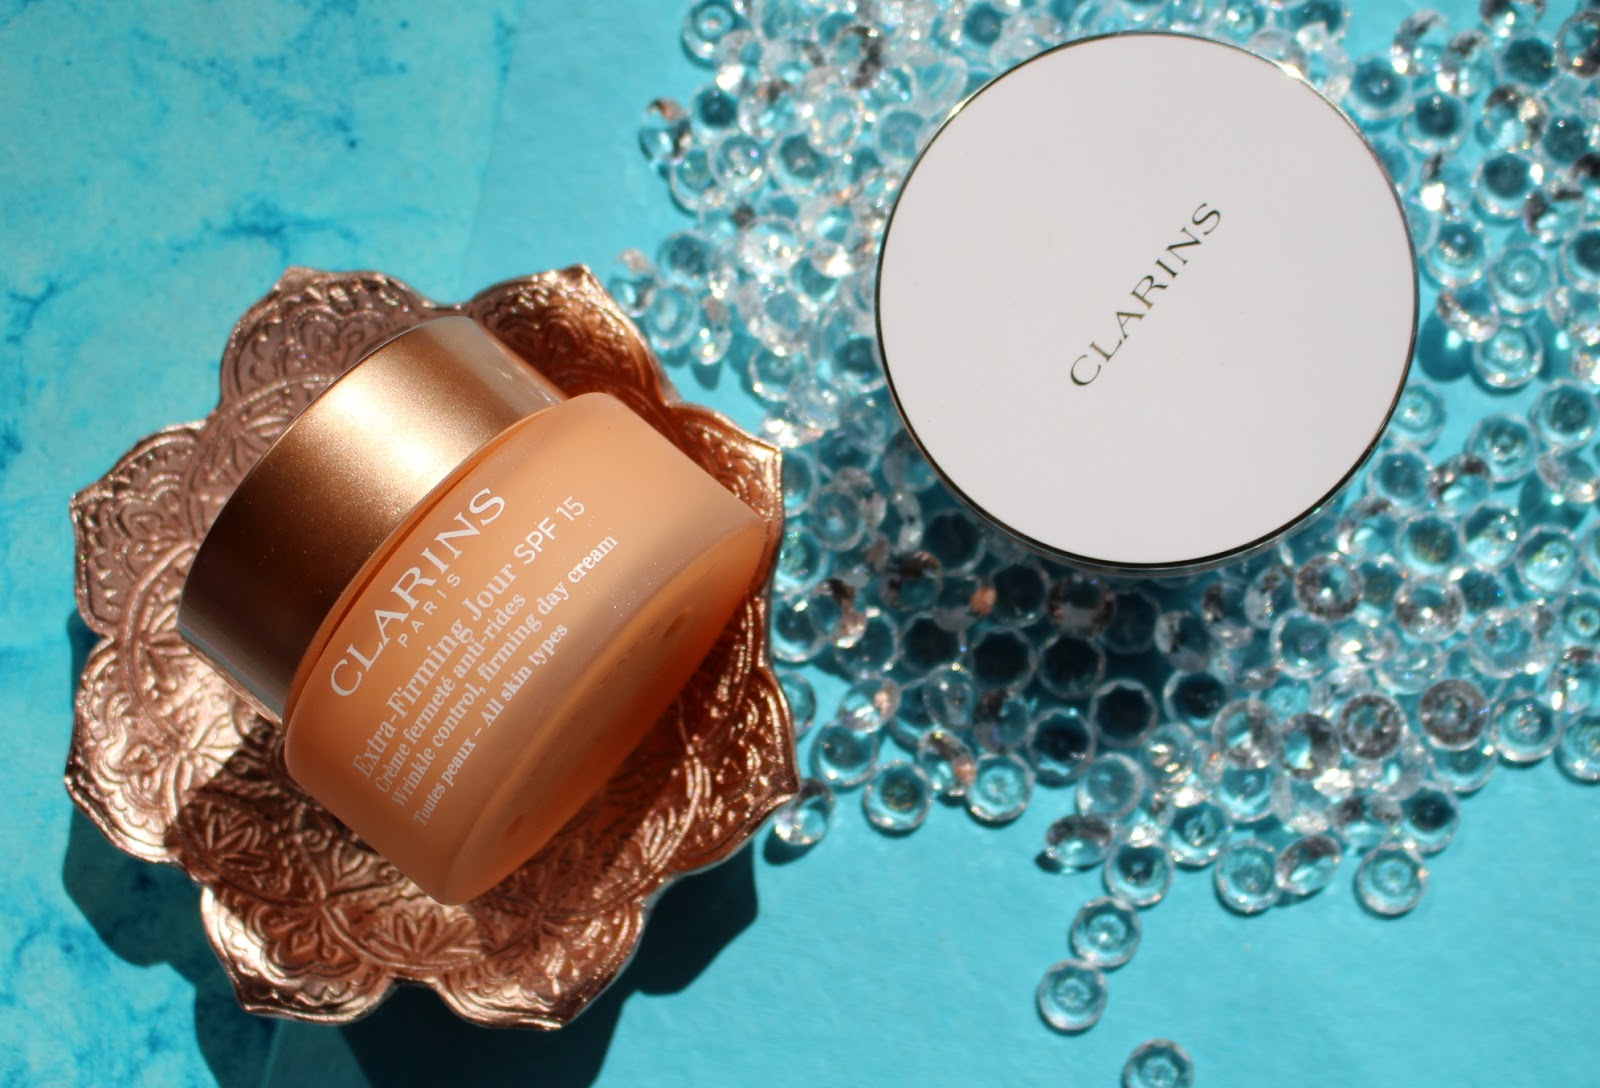 Clarins Extra Firming Jour Day Cream Spf15 And 15ml Night Everlasting Cushion Foundation